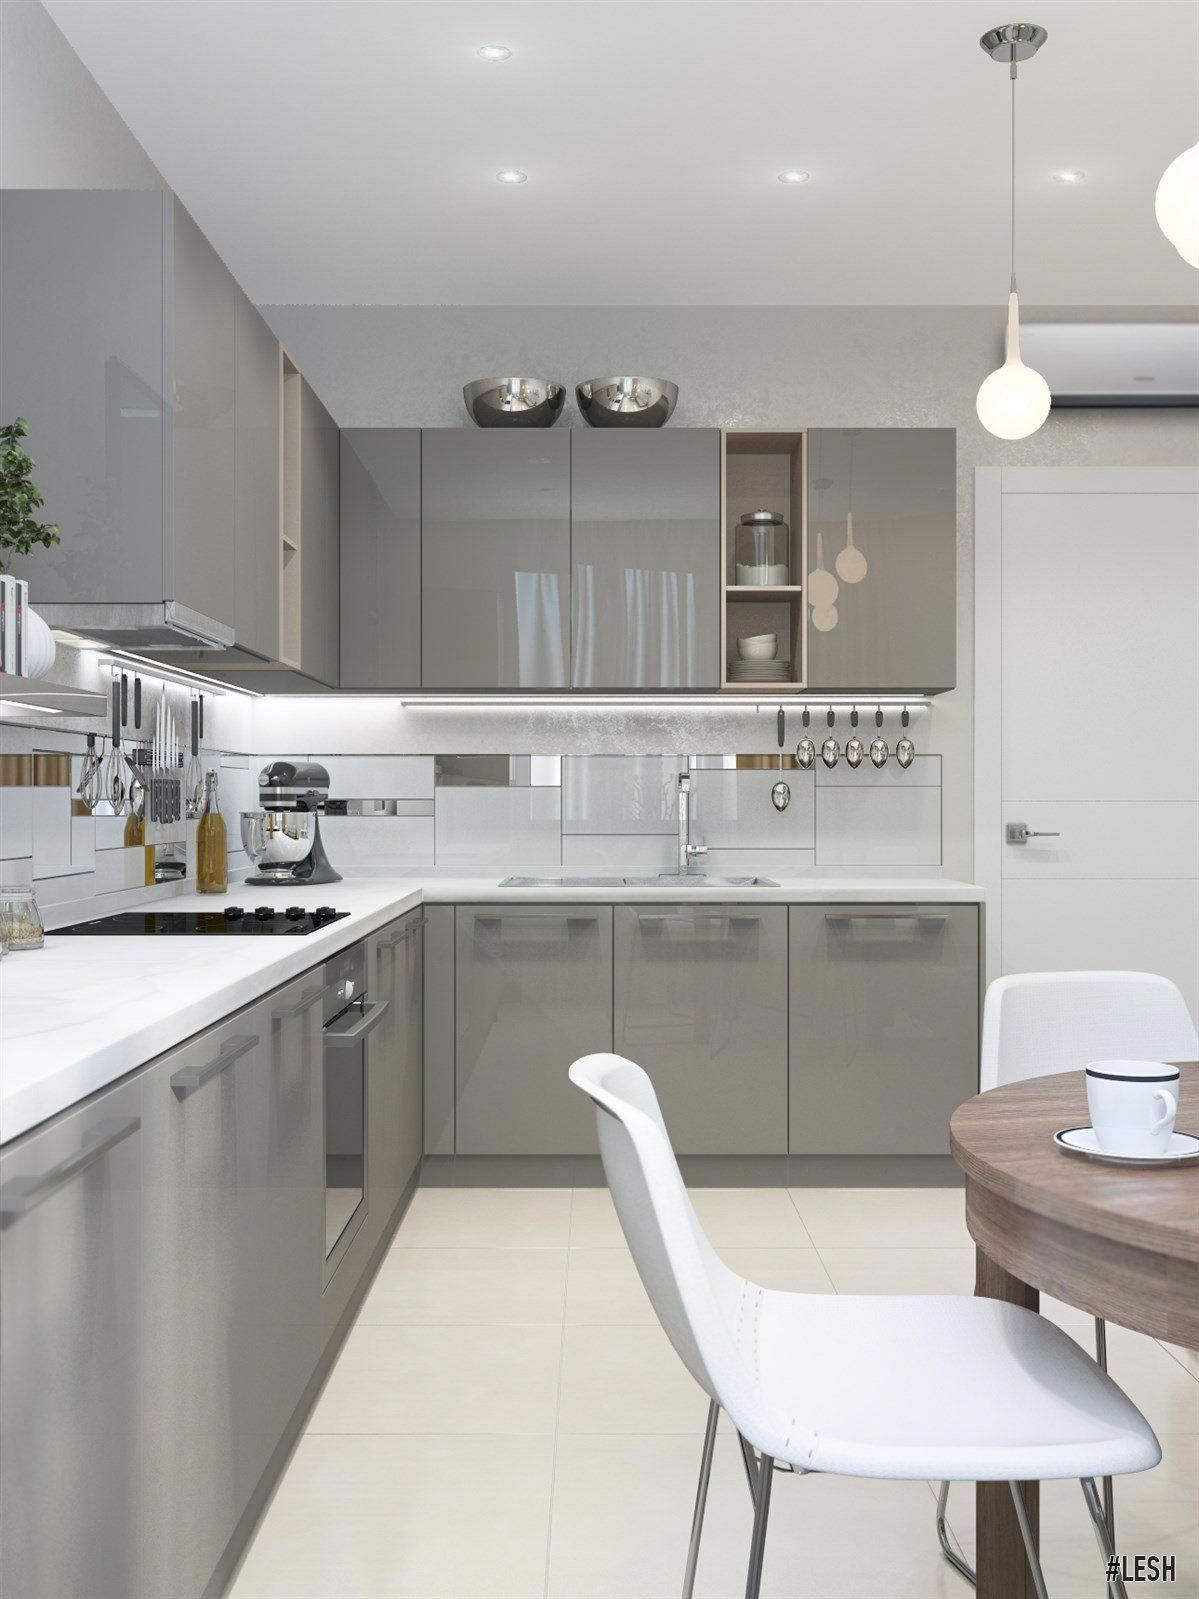 Lesh also clarendon homes seaview kitchen and view of access to walk in rh pinterest